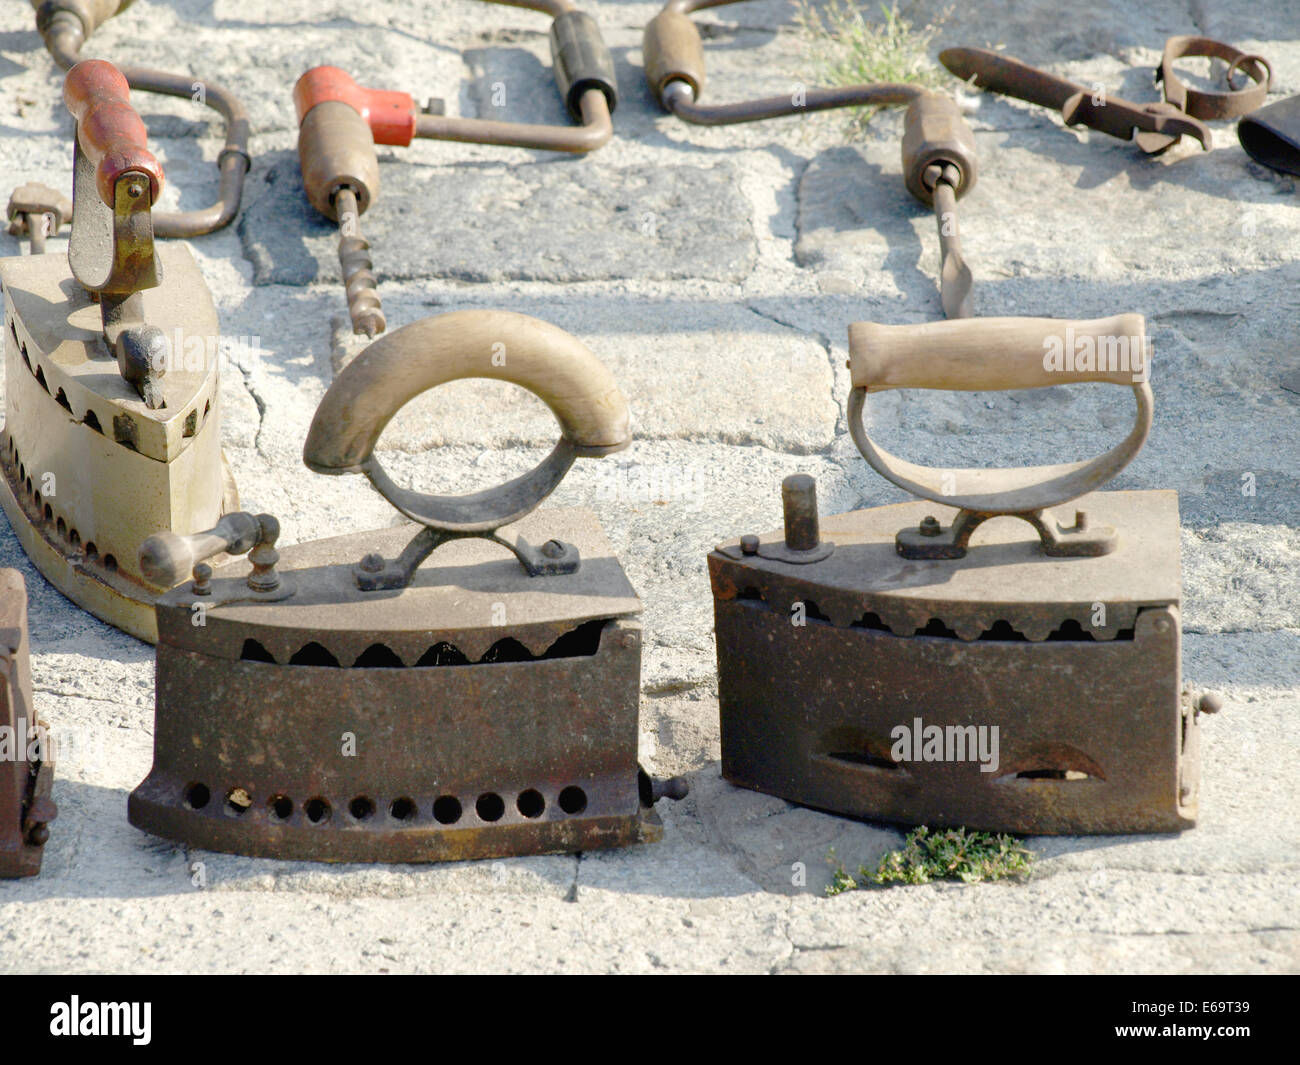 Exibition of old items at the antique fair - Stock Image